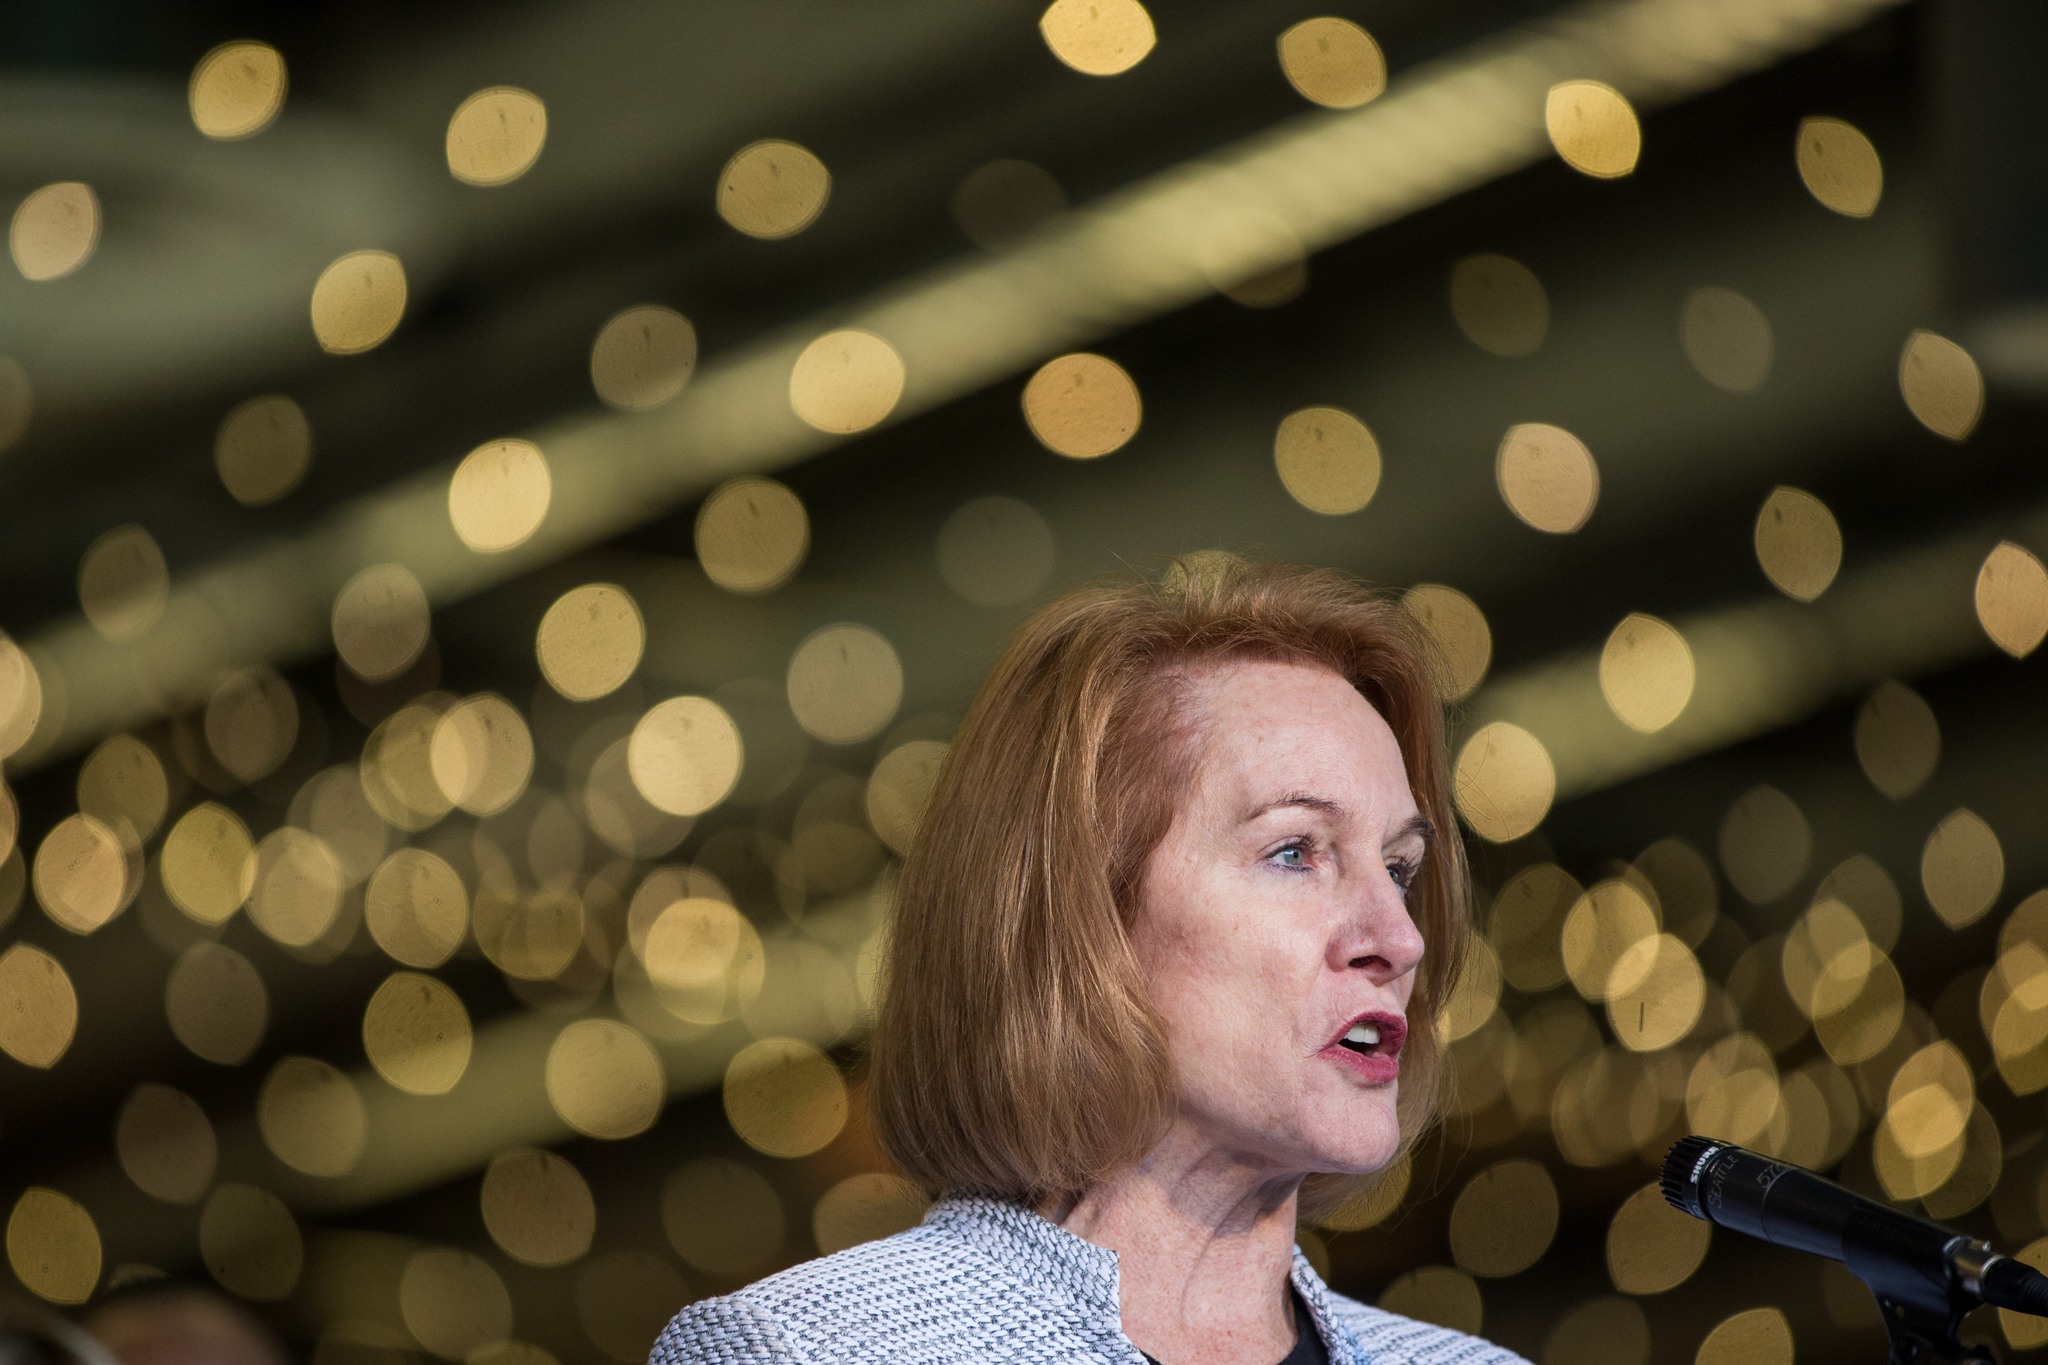 Durkan rails against Trump on homelessness: 'It is time to end this political game'